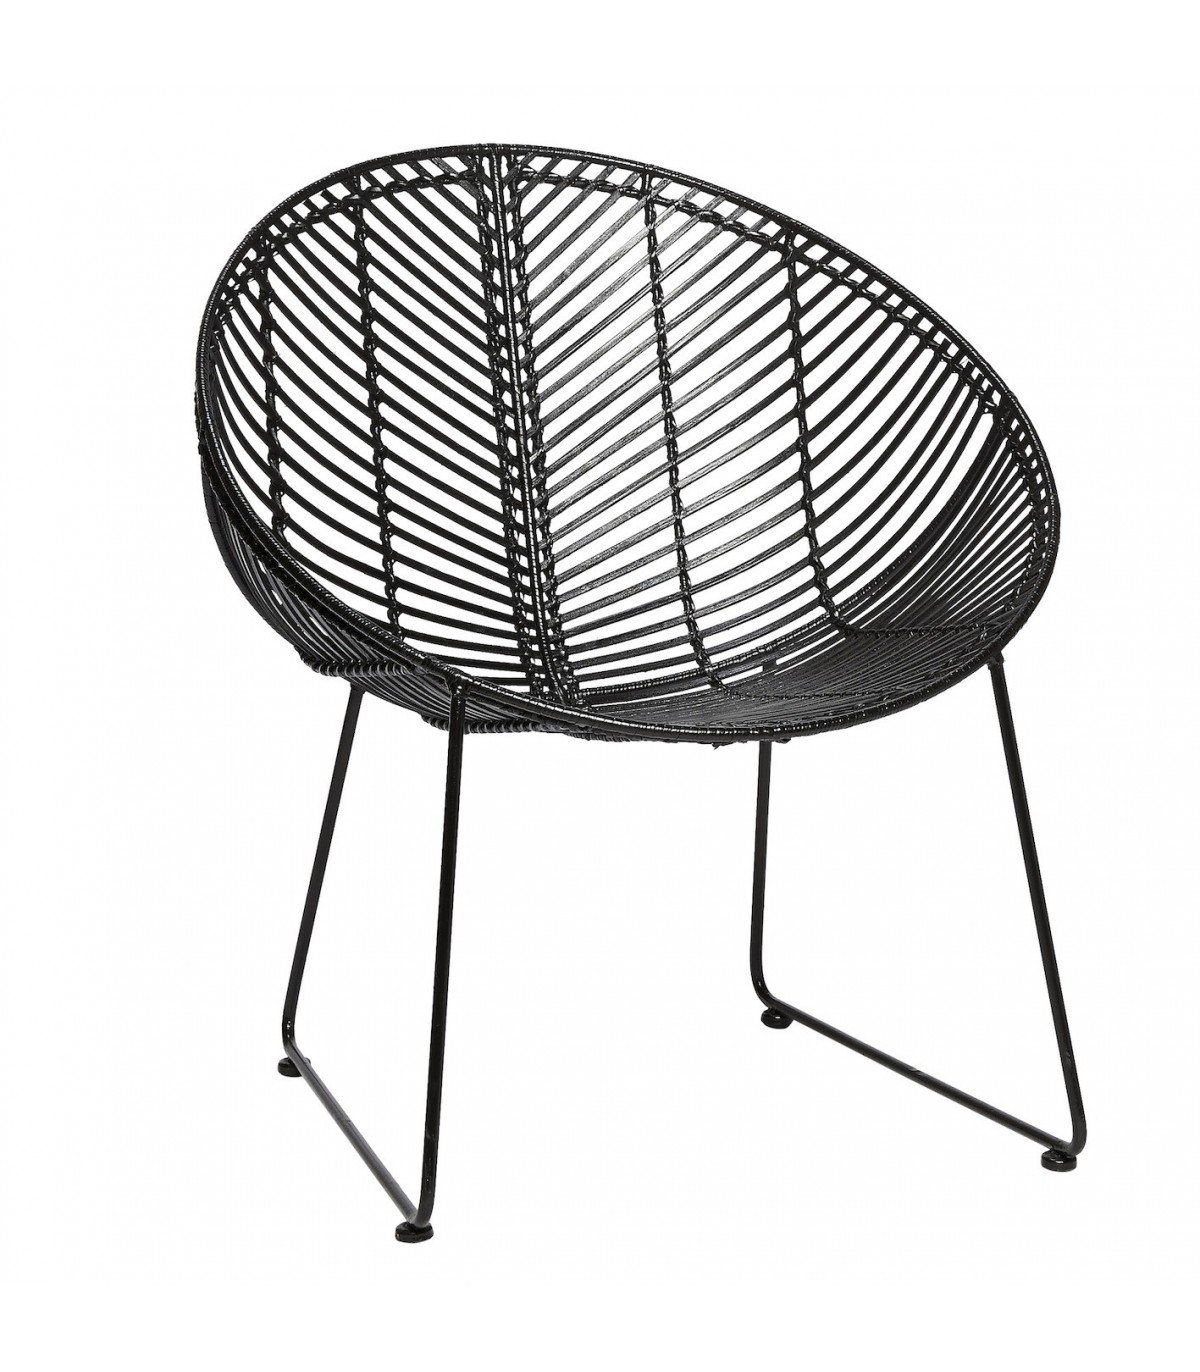 Hbsch Round Black Rattan Chair